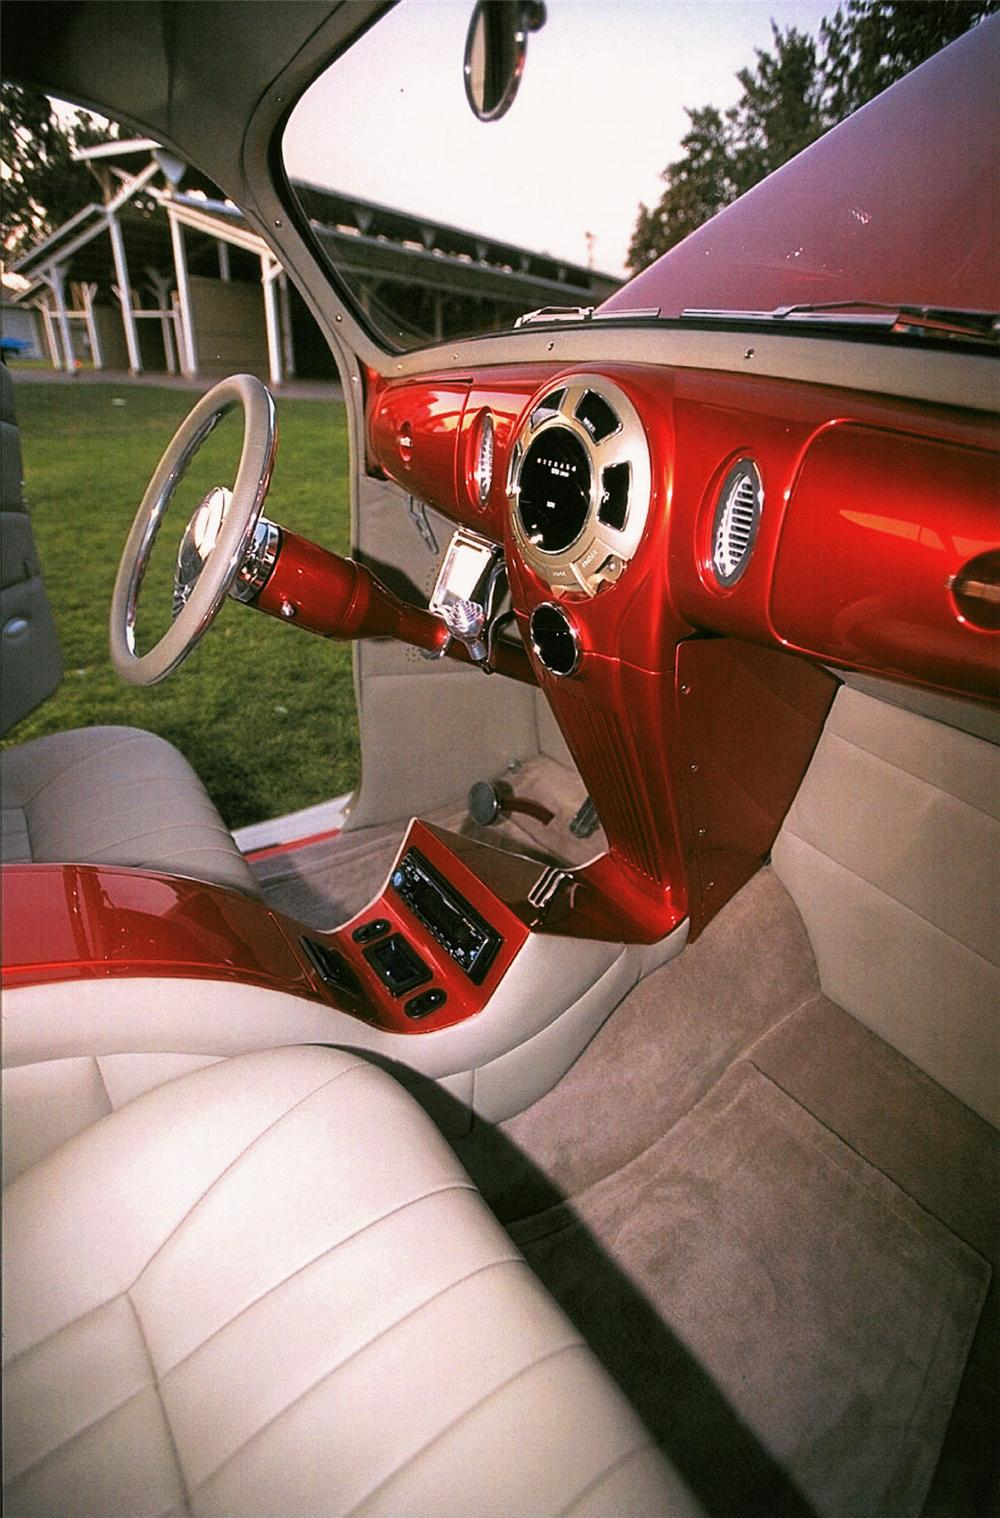 1938 LINCOLN ZEPHYR V12 COUPE STREET ROD - Interior - 24133